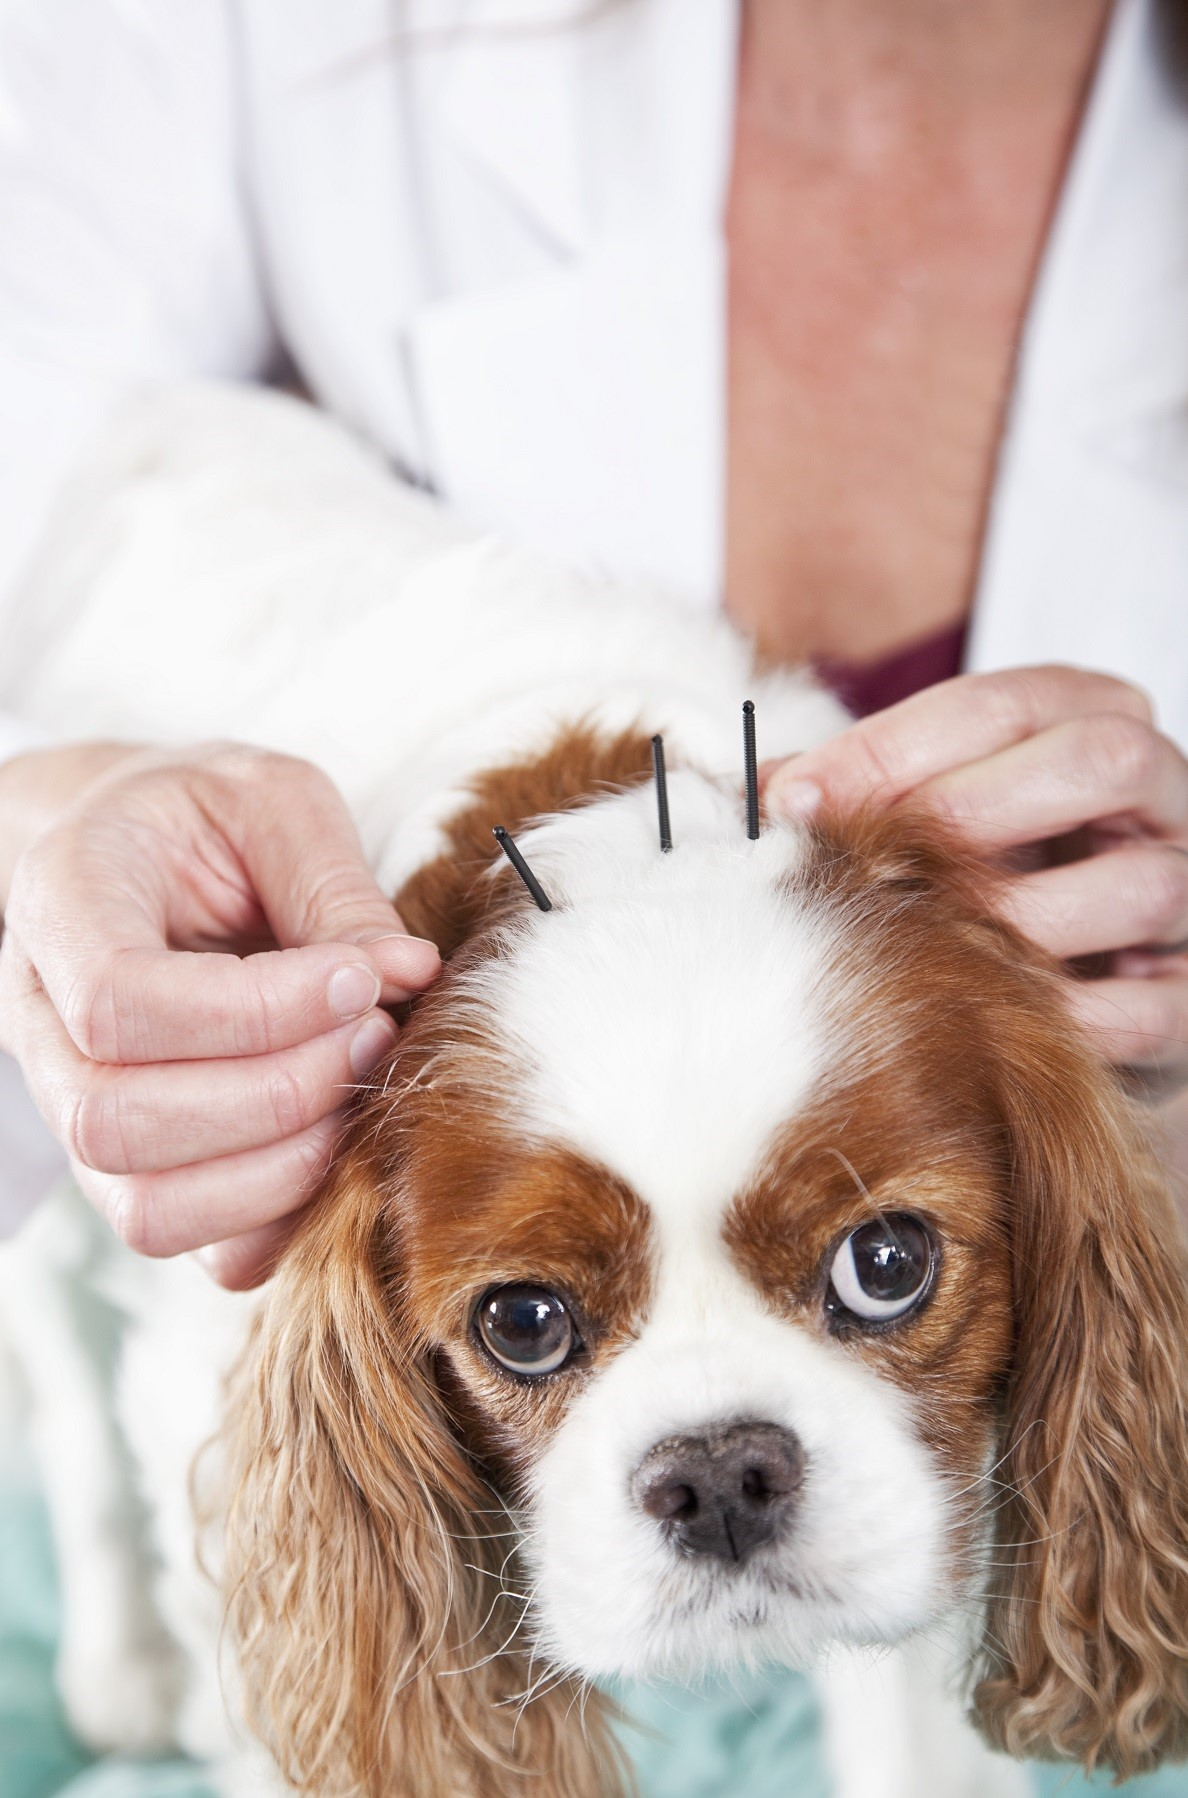 Chinese dog herbal therapy - Please Click Here For A Detailed List Of Conditions That Acupuncture And Chinese Herbal Medicine Can Help To Address